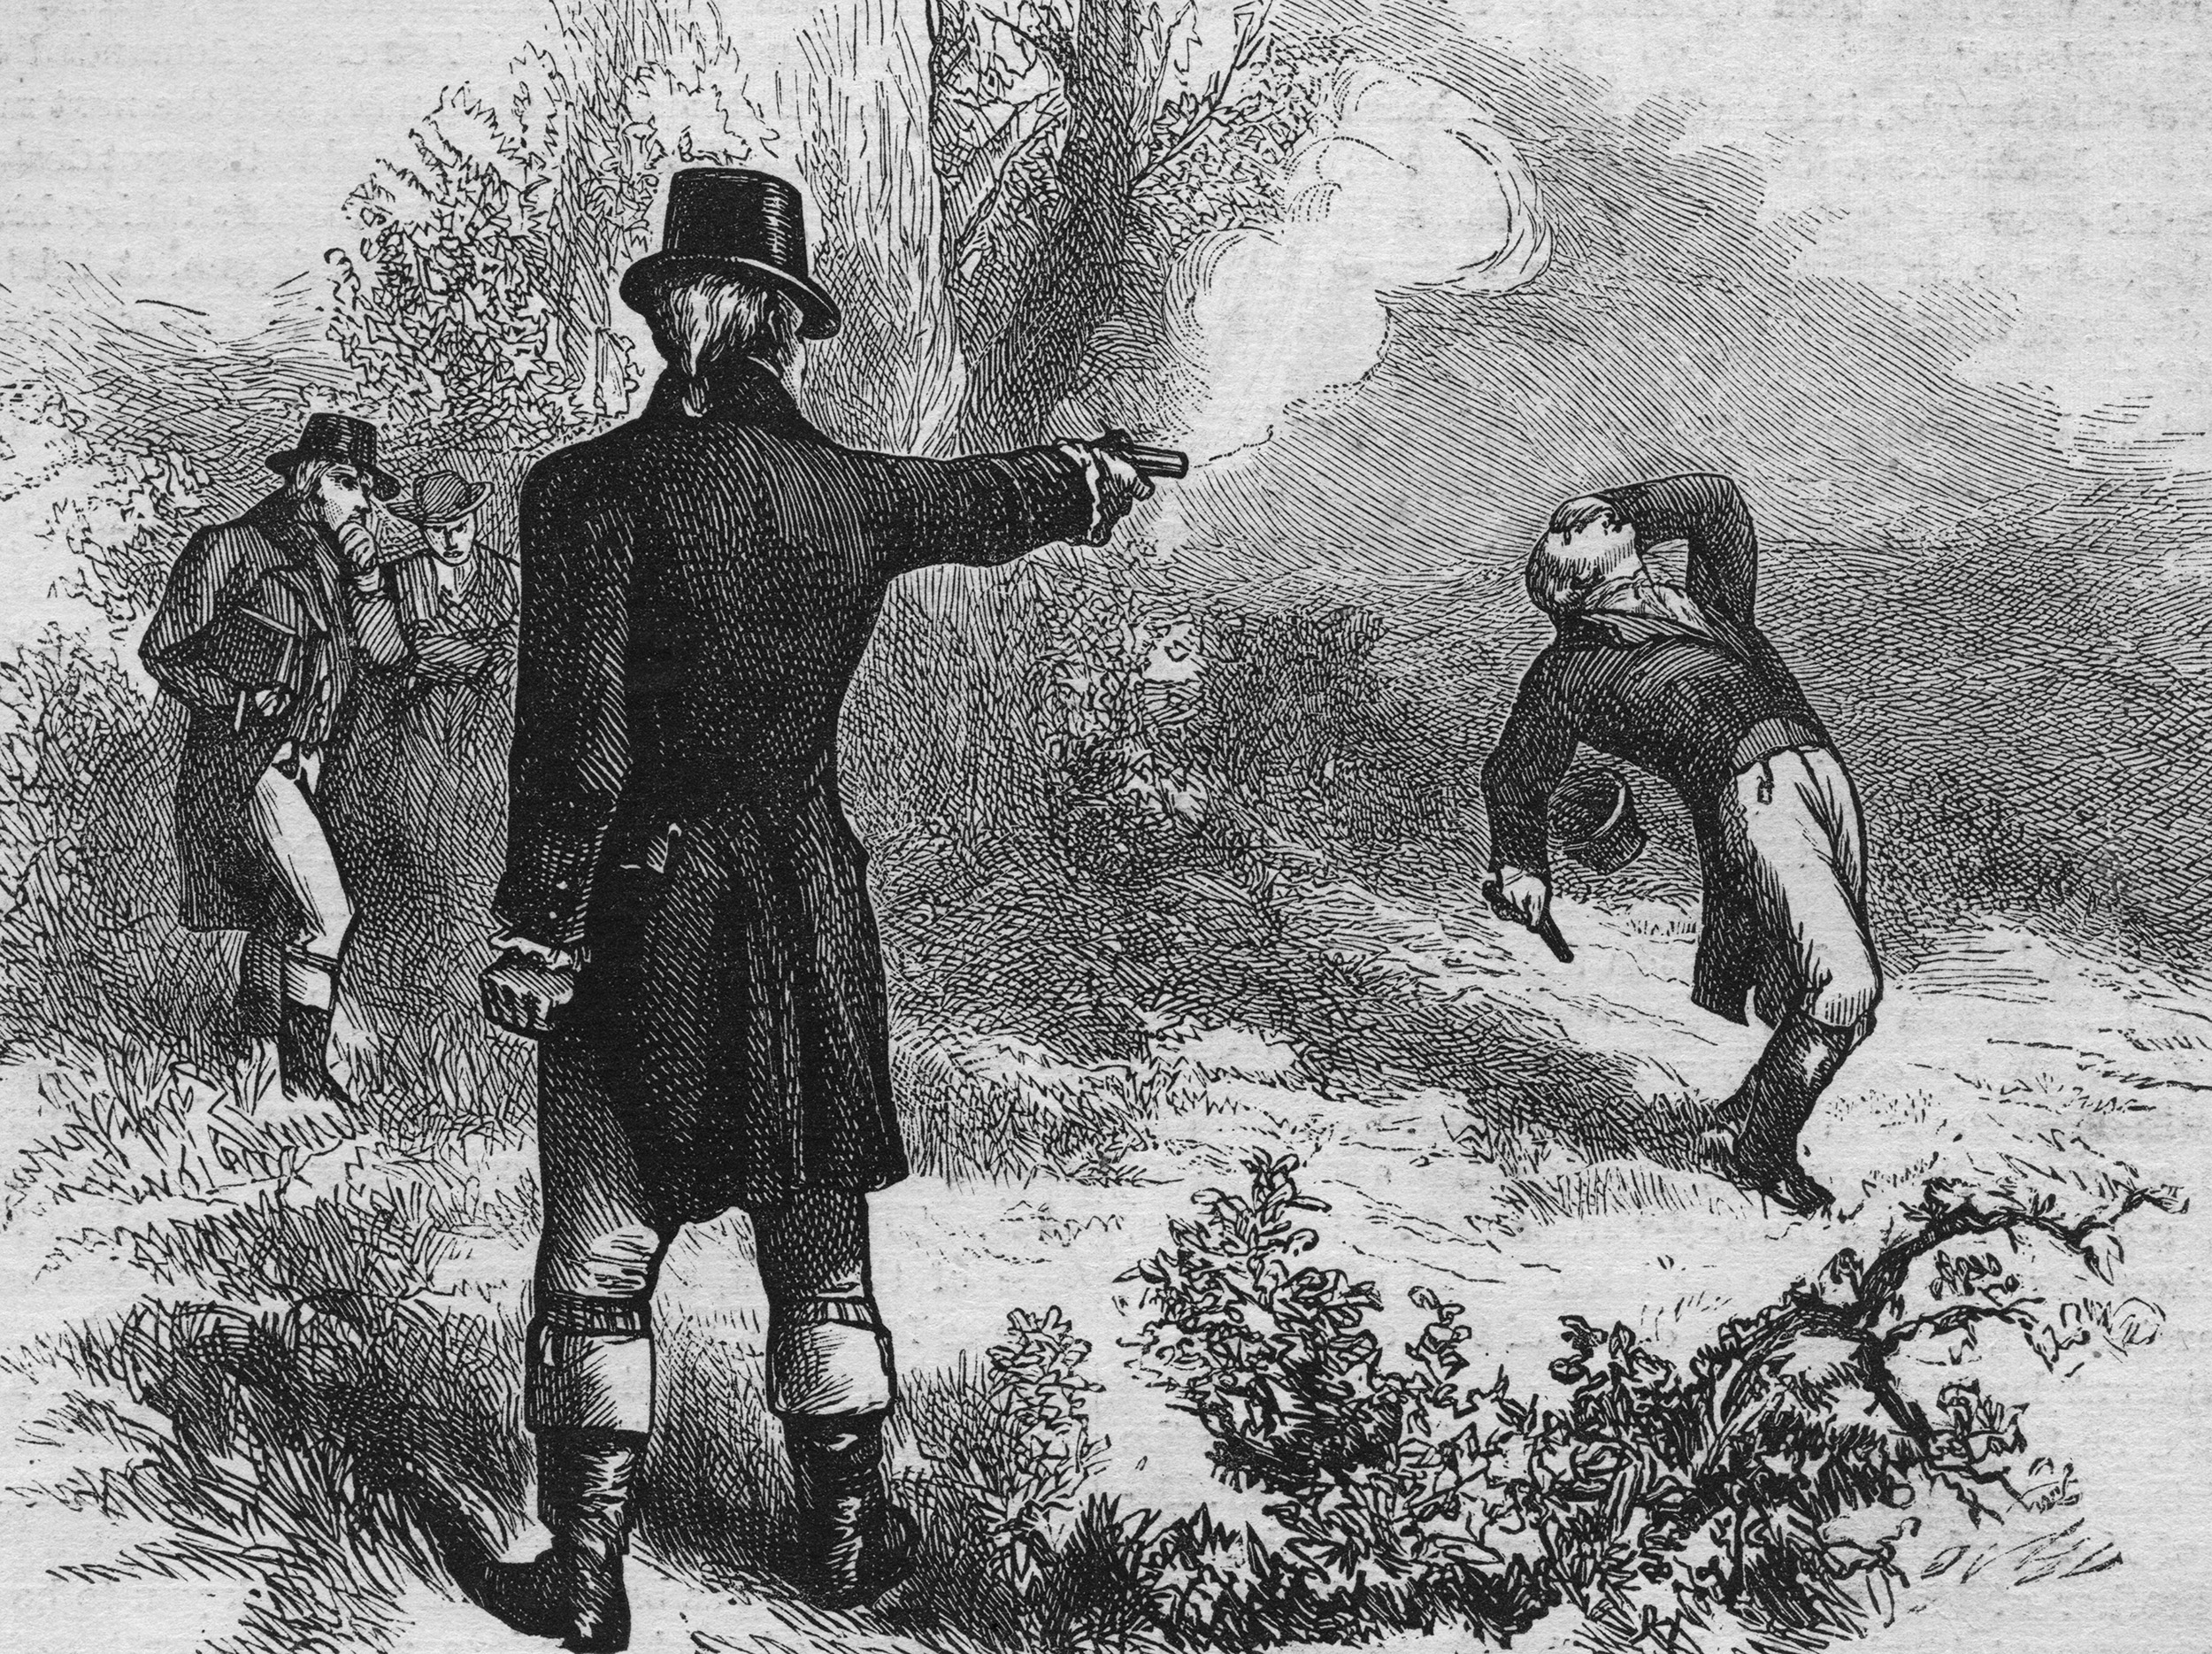 An engraved illustration of The Burr/Hamilton duel on July 11, 1804.